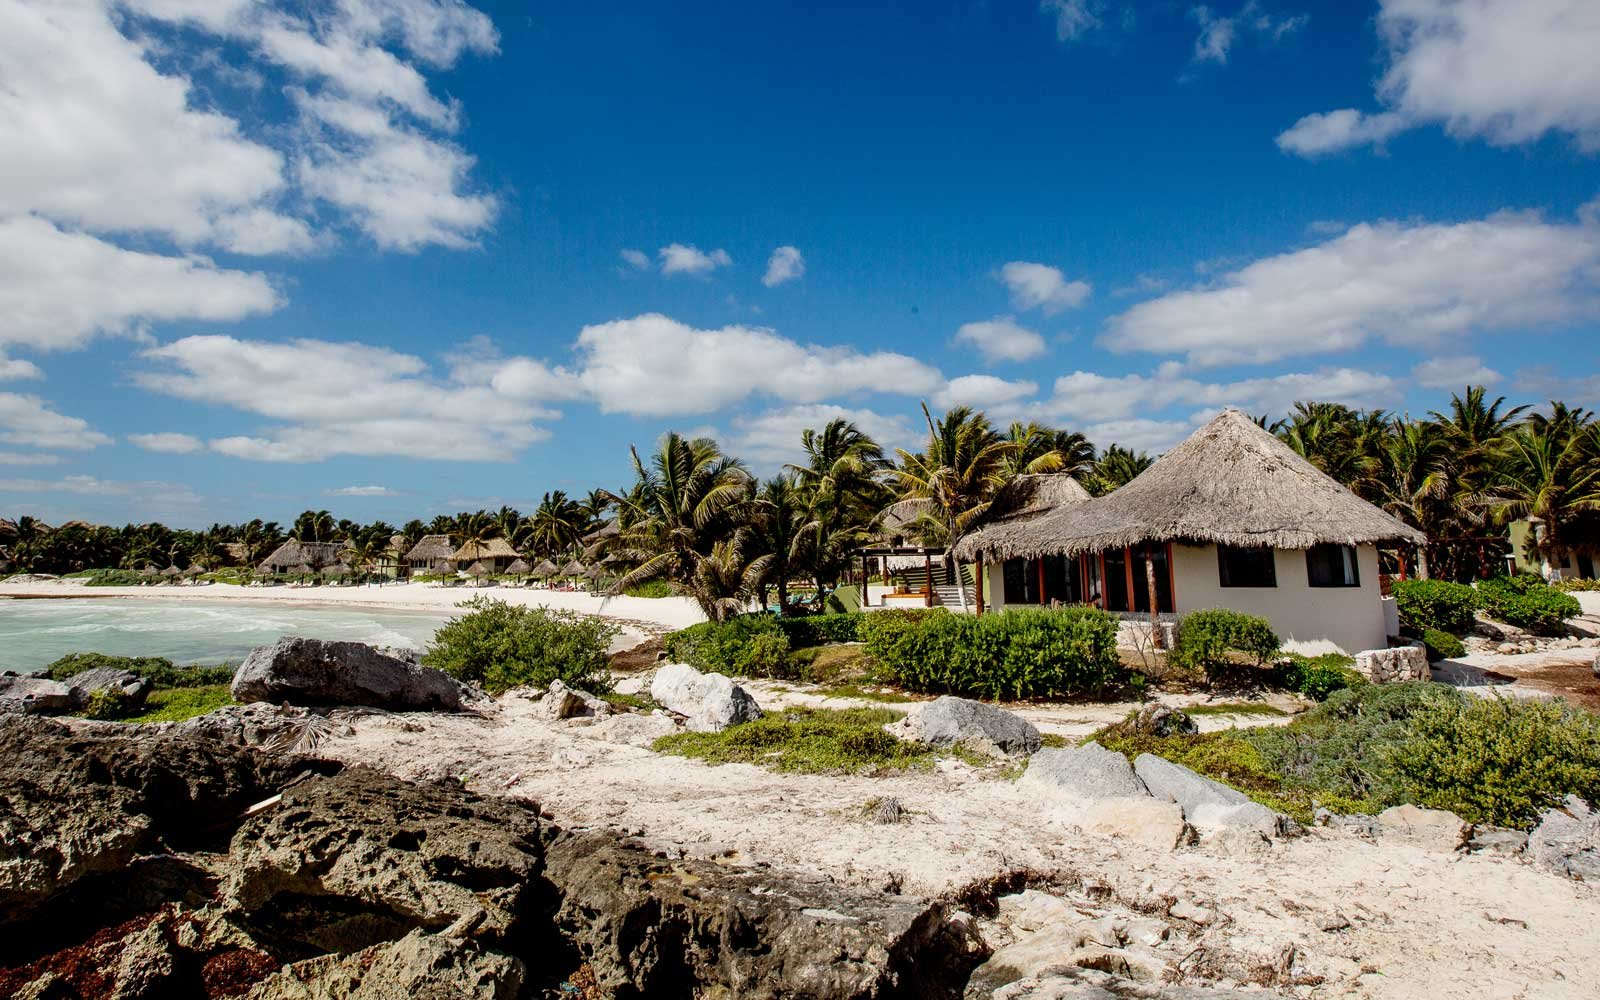 Exterior of the Maya Tulum resort